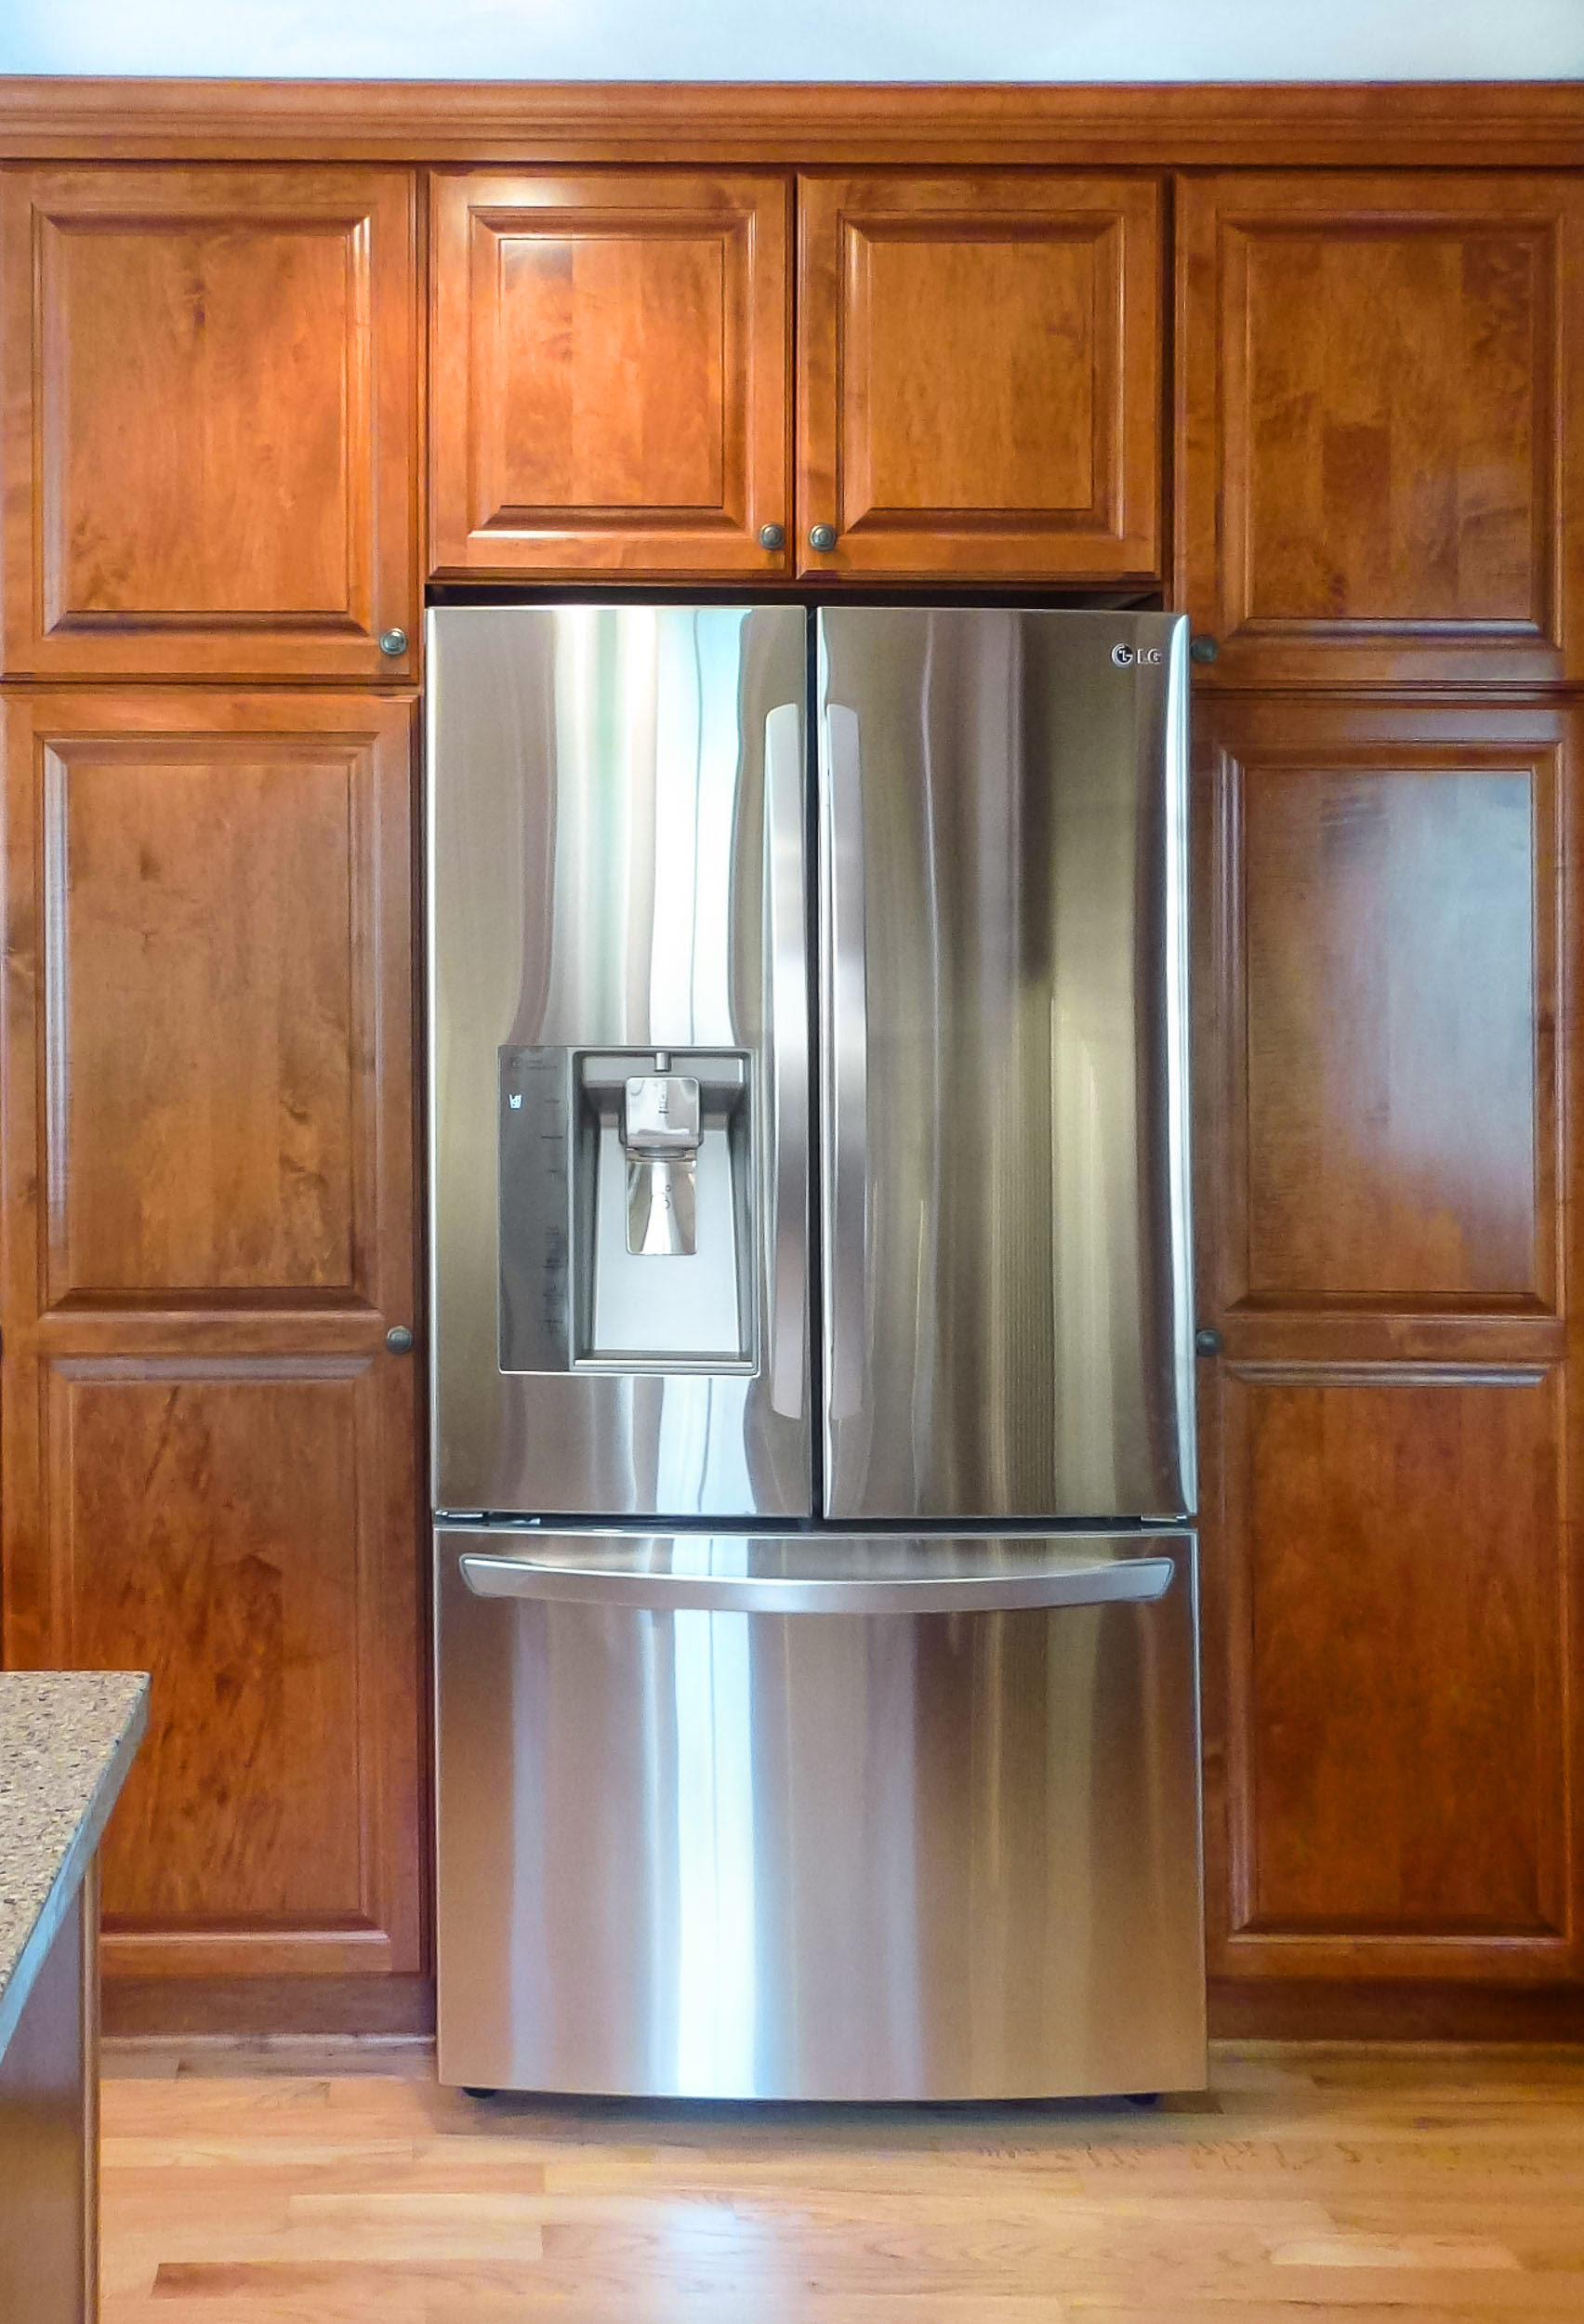 The new kitchen has LG appliances including a cabinet depth refrigerator.